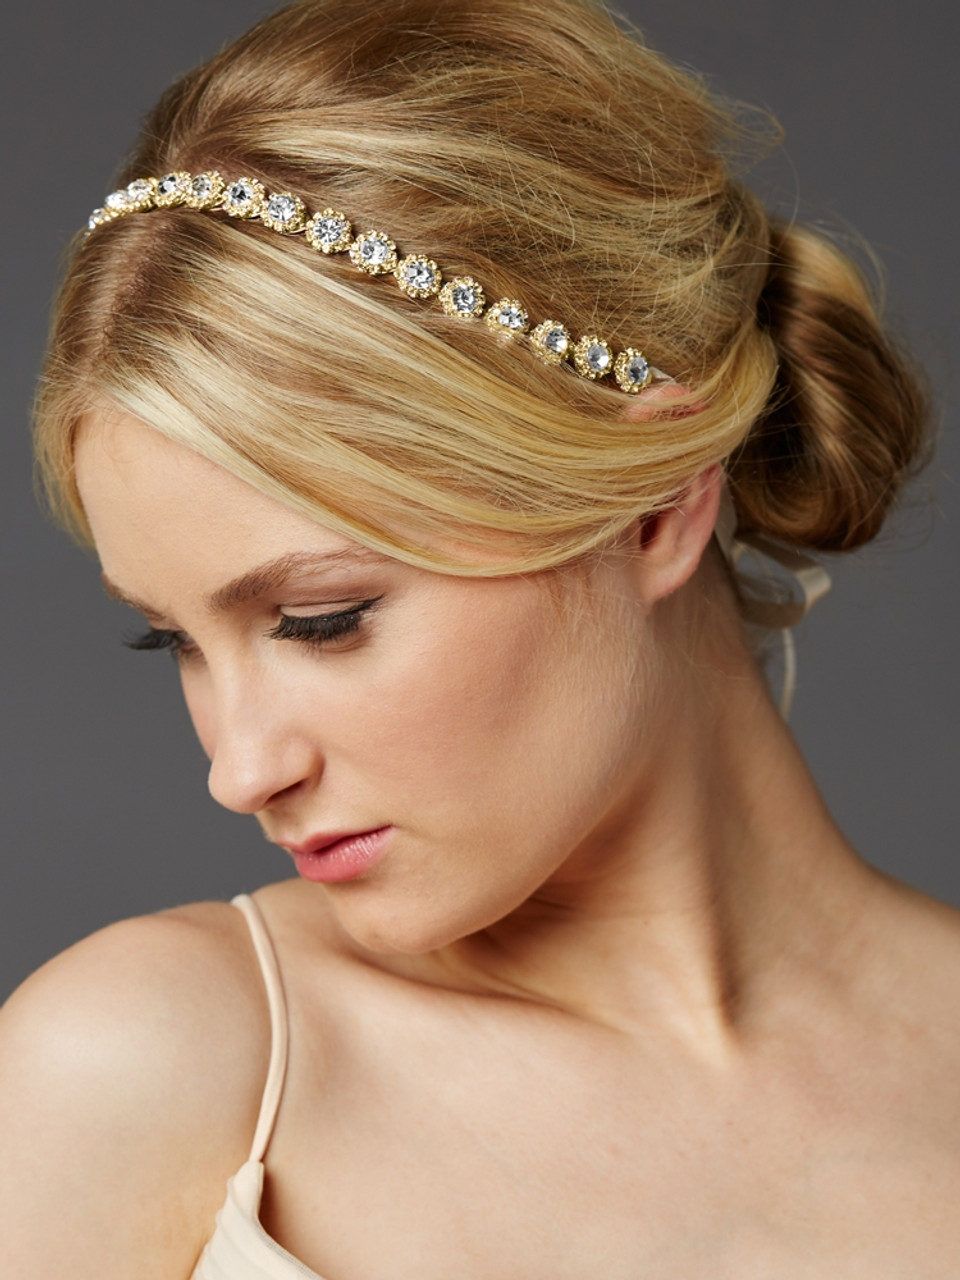 Mariell Rose Gold Wedding Bridal Headband with Round Crystals and Ivory Ribbons